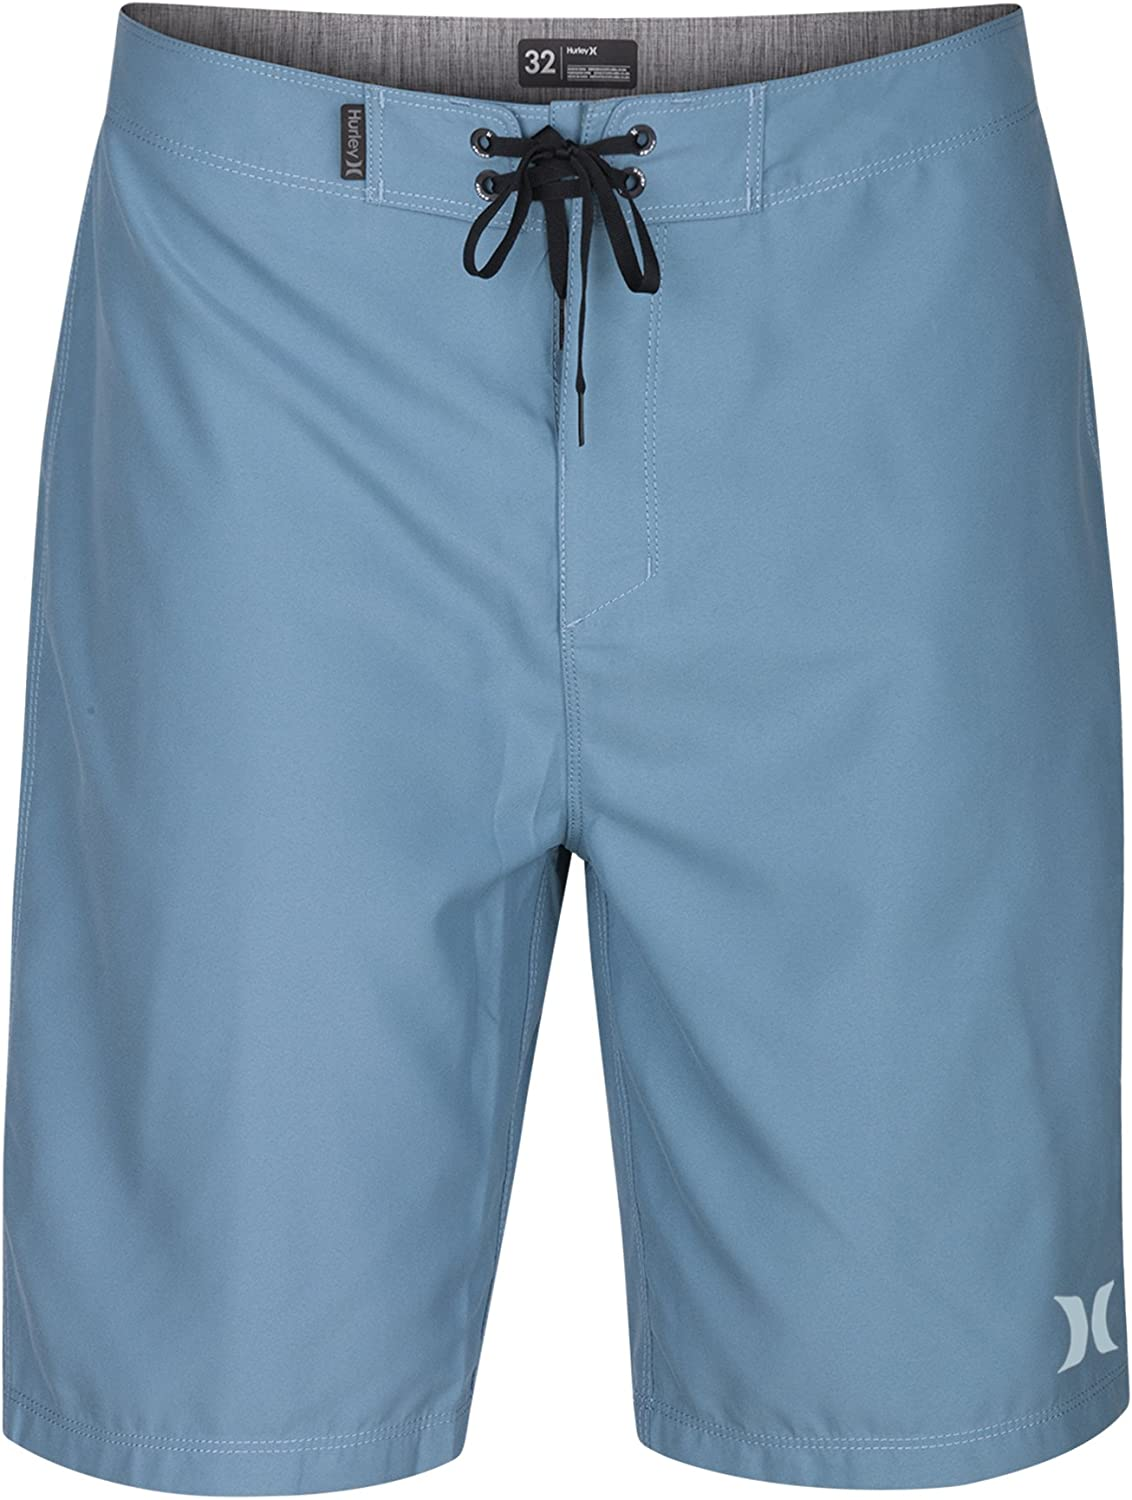 Hurley Men's Supersuede One and Only Board Shorts